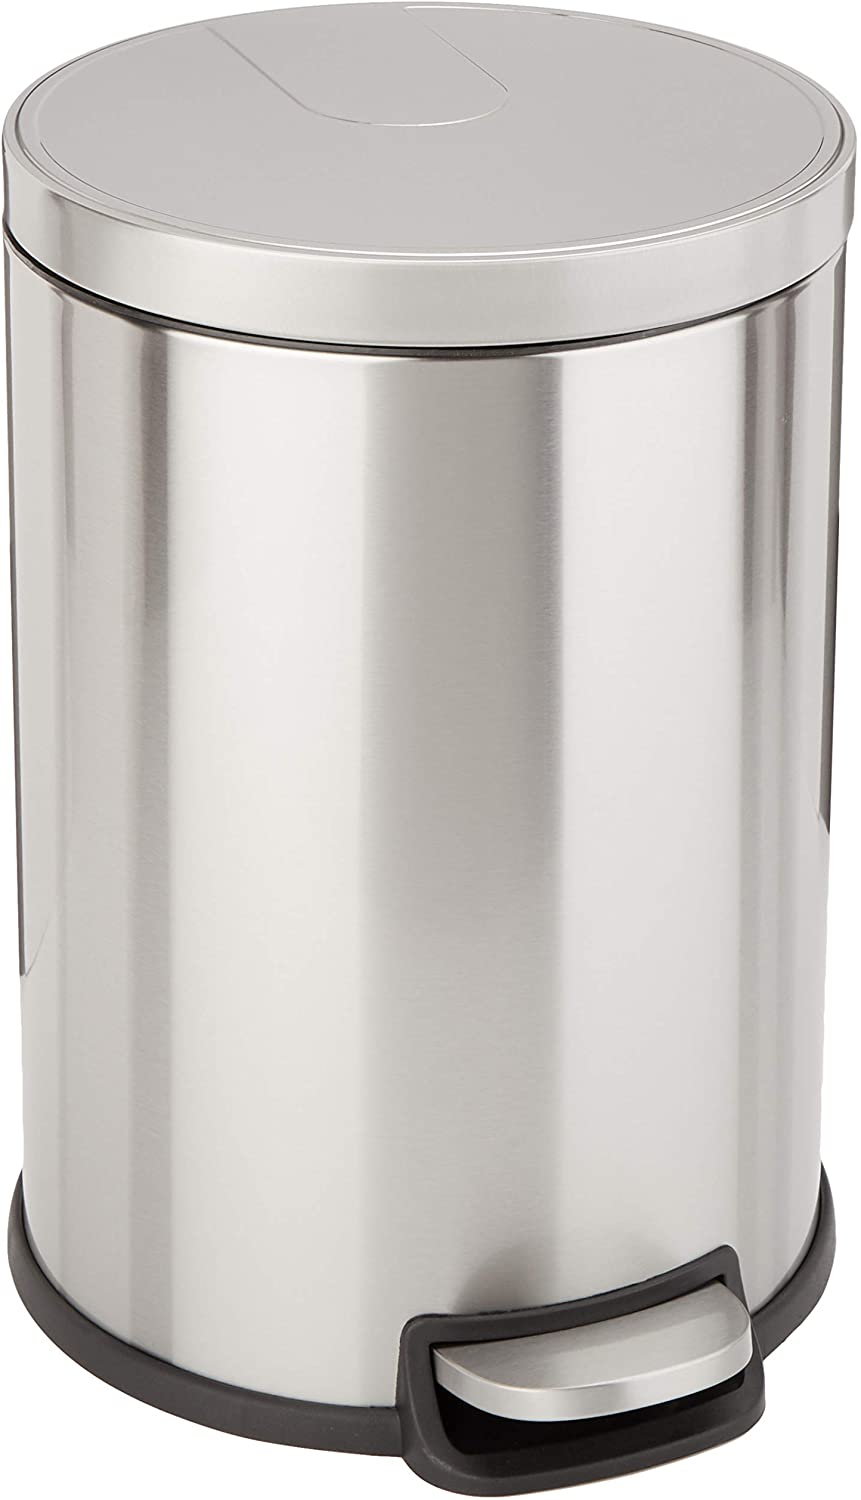 AmazonBasics Round Soft-Close Trash Can - 20L